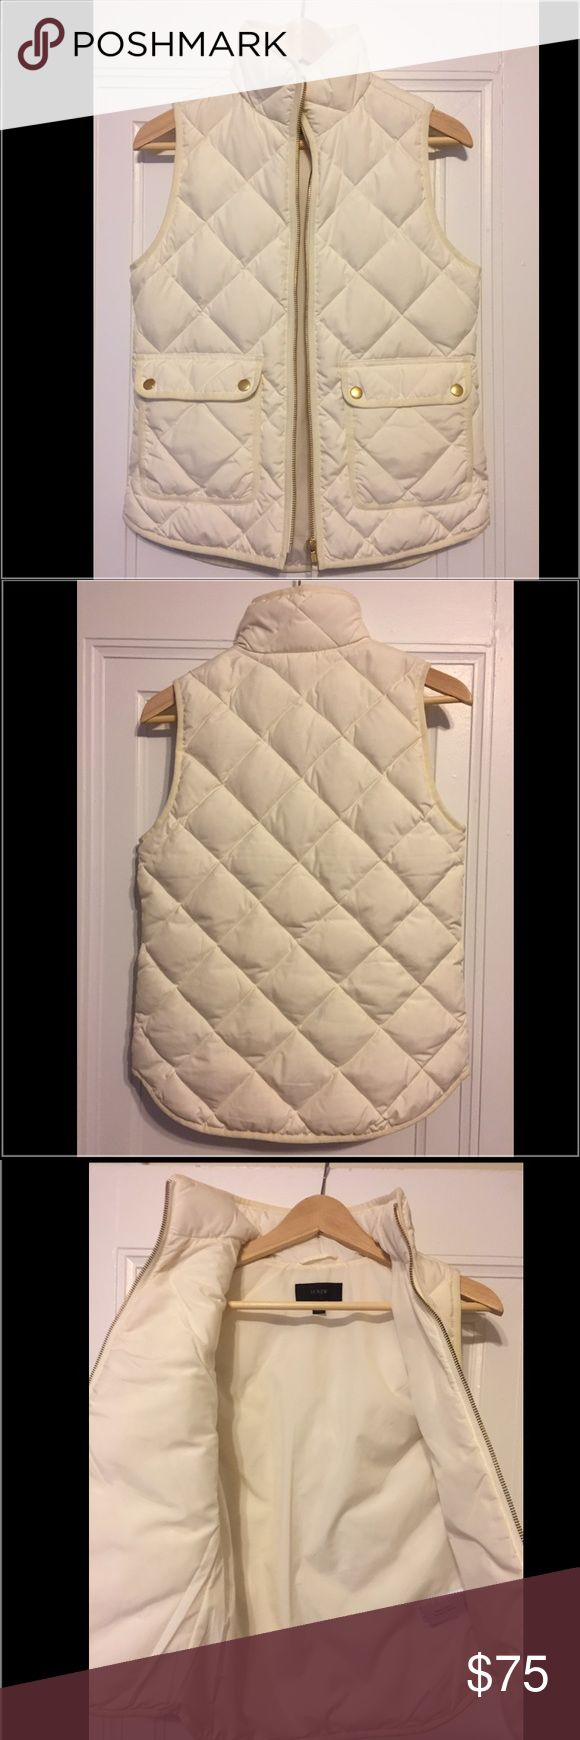 """J. Crew Excursion Quilted Down Vest This is a gorgeous vest, but it sadly does not work well with my complexion. Only worn once. Please note that J. Crew vests run big- I am usually a size 0 or XS (5'5"""", 120 lbs), but this fit perfectly in an XXS.     From J. Crew:   Our customer-favorite down vest that's slim and lightweight, but still warm enough to keep chilly weather at bay--now in new, perfect-for-fall colors to choose from.  Down-filled poly.  Standing collar.  Zip closure.  Pockets…"""